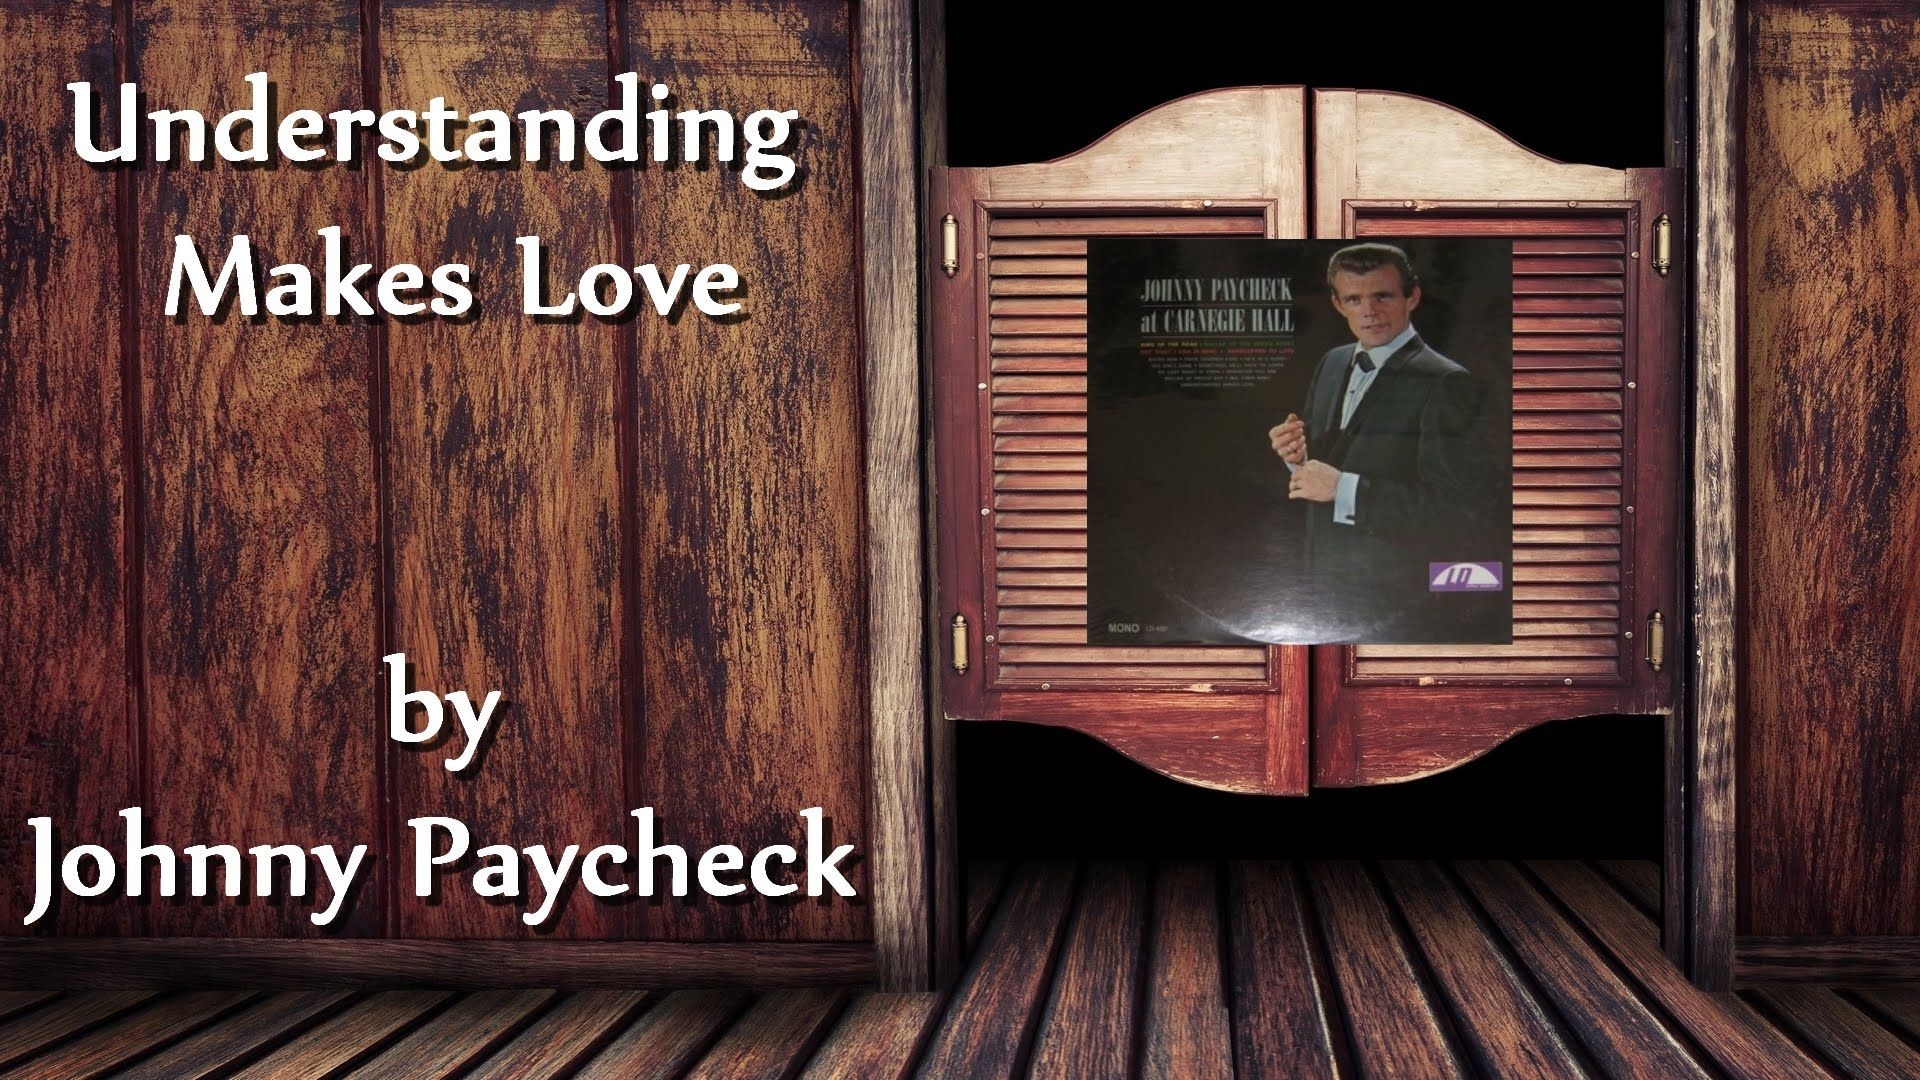 Johnny paycheck understanding makes love gospel and country